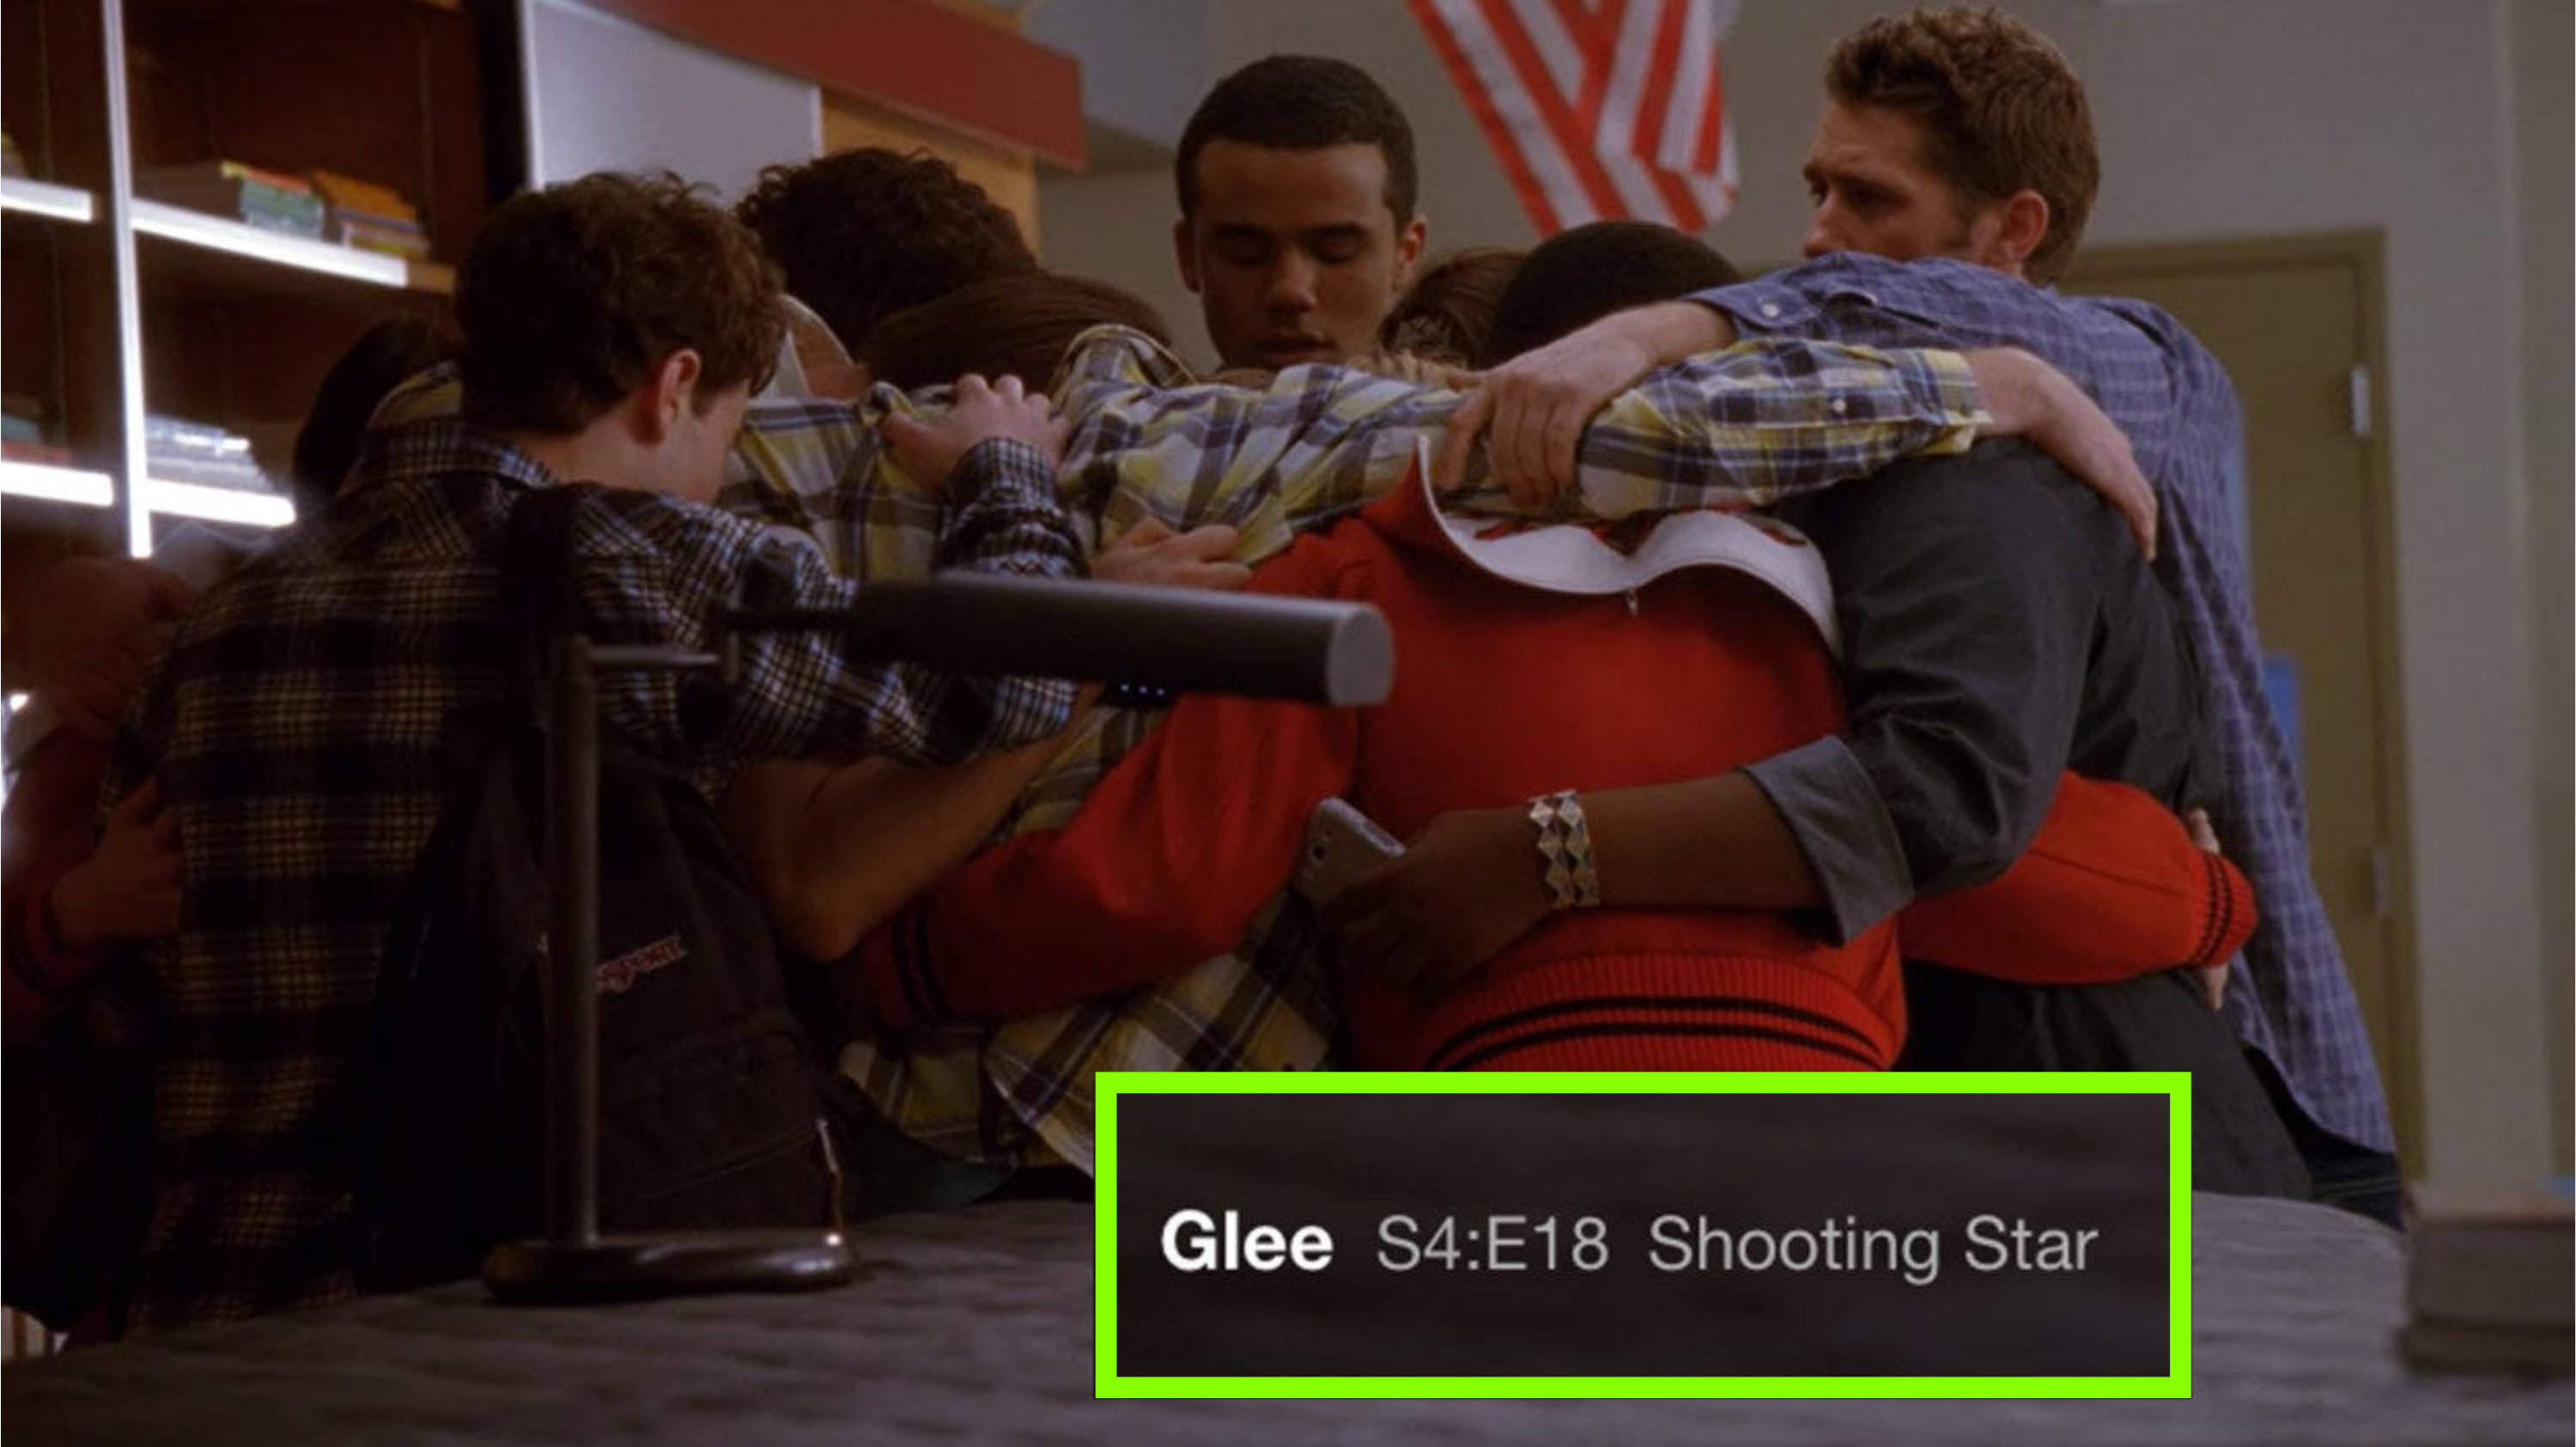 """The glee club huddling and comforting each other in the choir room; a screenshot of the episode title, """"Shooting Star,"""" in the lower righthand corner"""